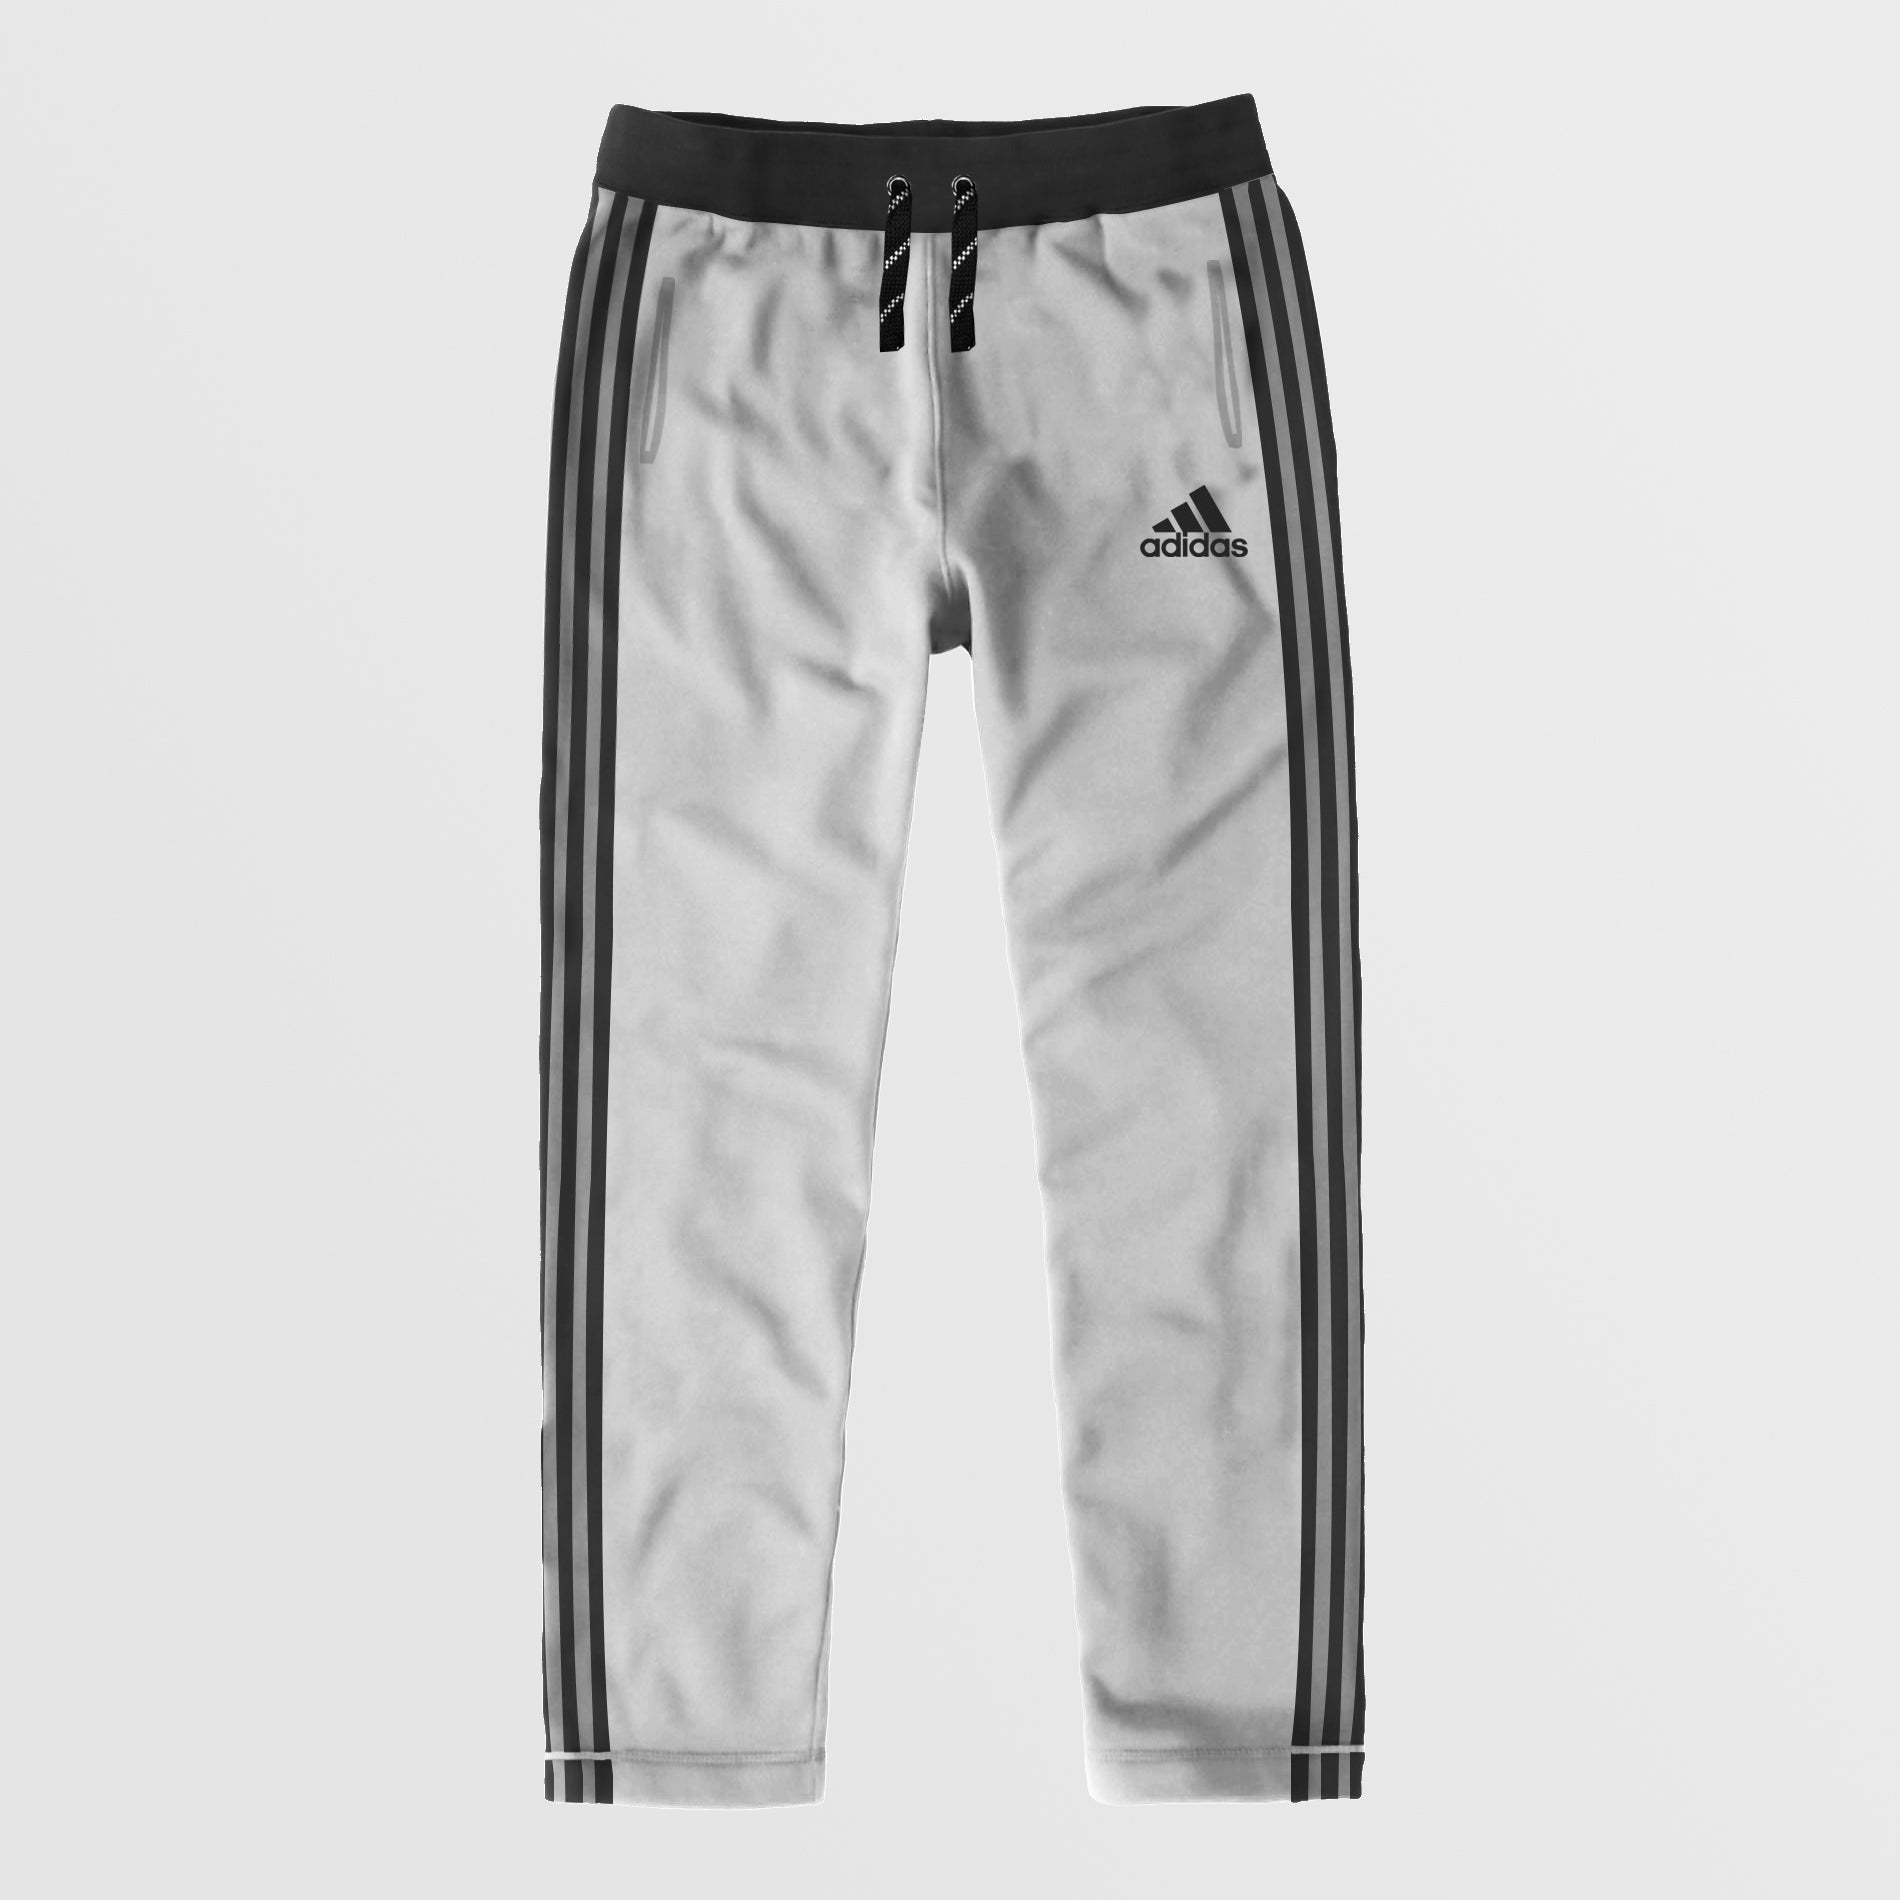 Adidas Single Jersey Regular Fit Trouser For Men-Light Grey With Charcoal Stripes-NA8793